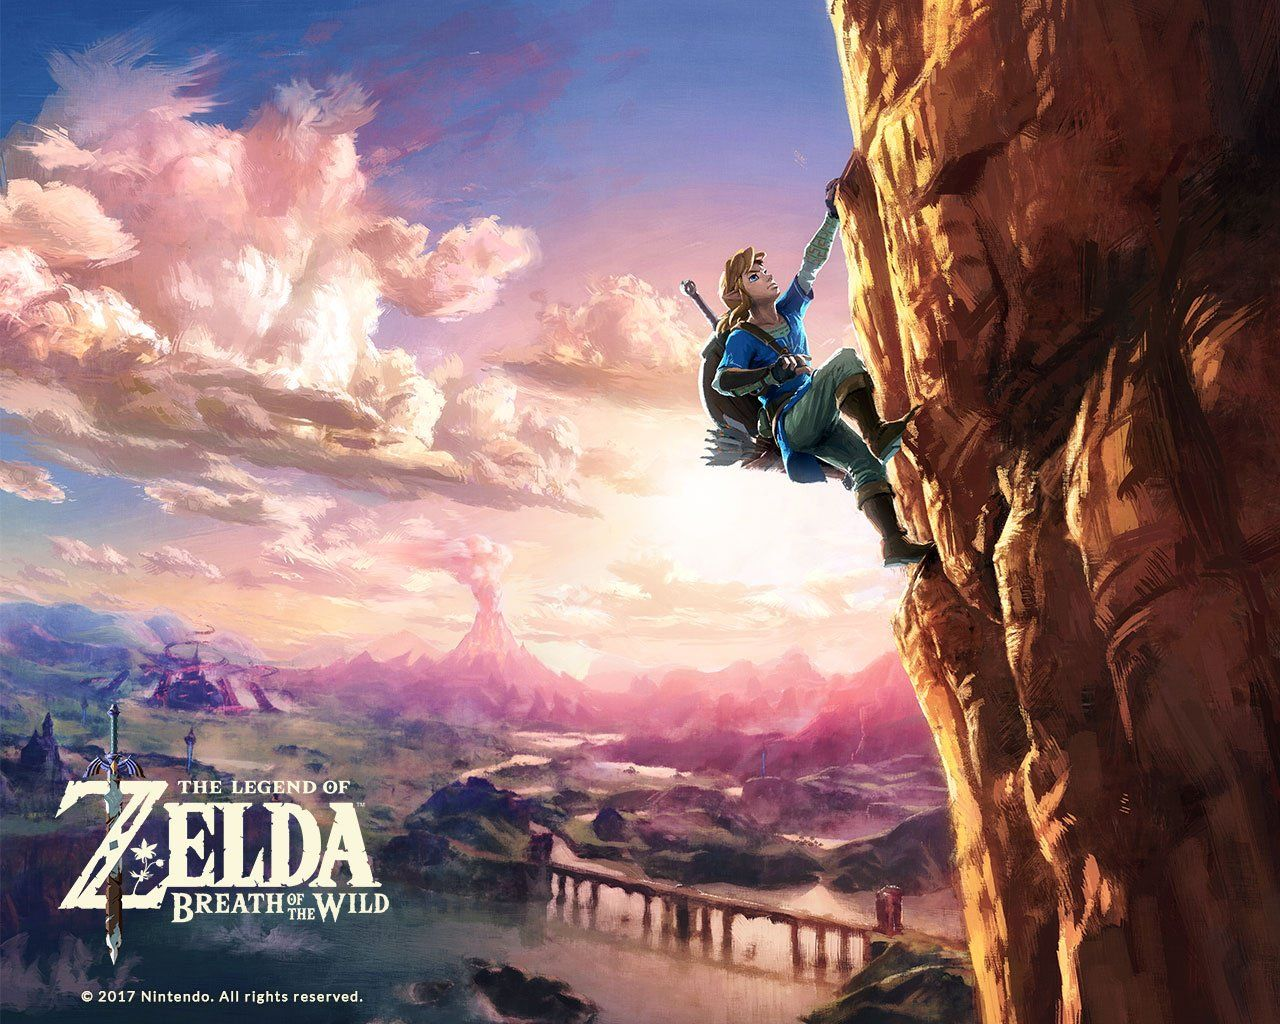 The Legend Of Zelda Breath Of The Wild Wallpapers Top Free The Legend Of Zelda Breath Of The Wild Backgrounds Wallpaperaccess